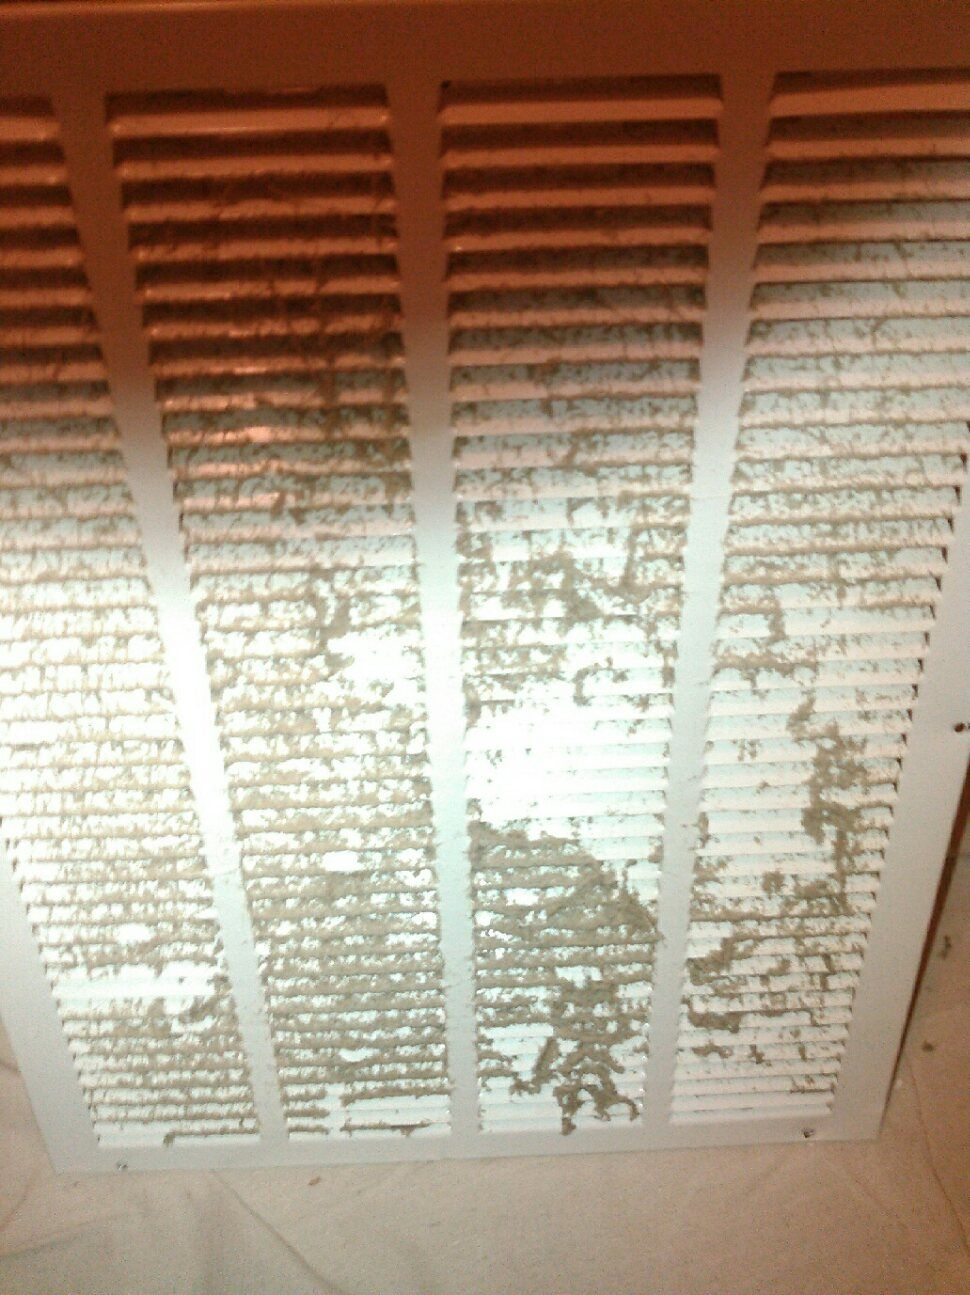 Dirty air grille before cleaning.